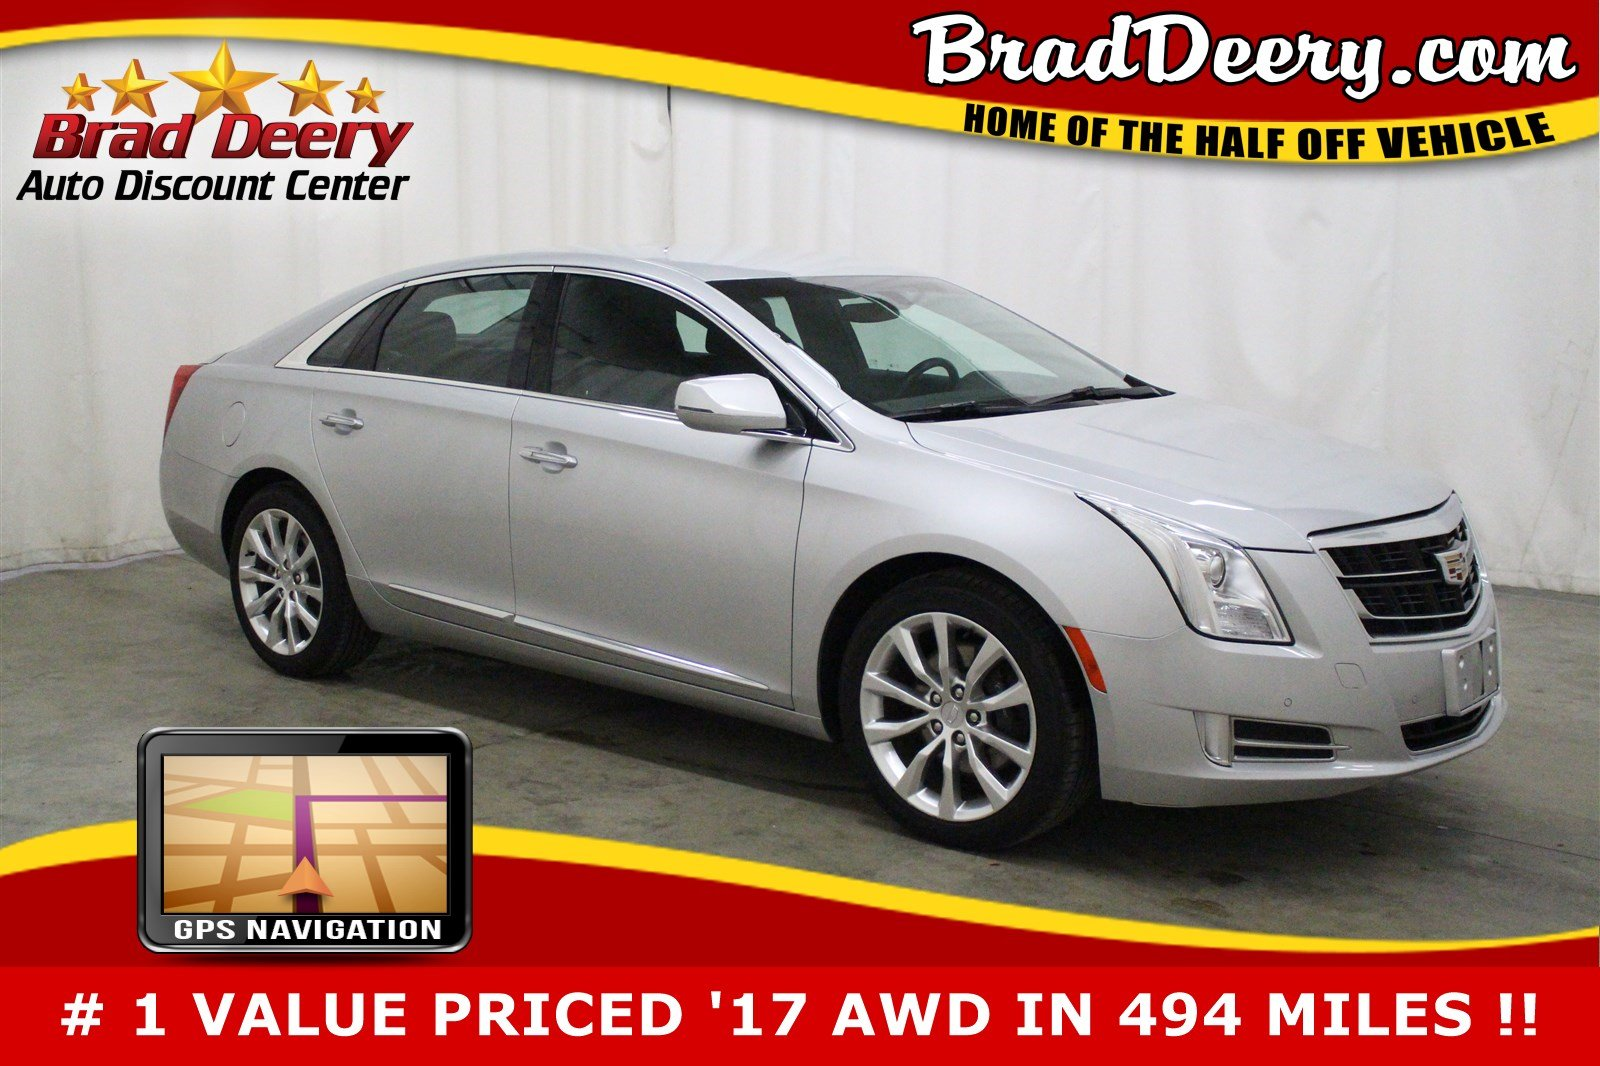 2017 CADILLAC XTS Luxury AWD w/ Nav, Htd/AC Leather & R. Start Sedan